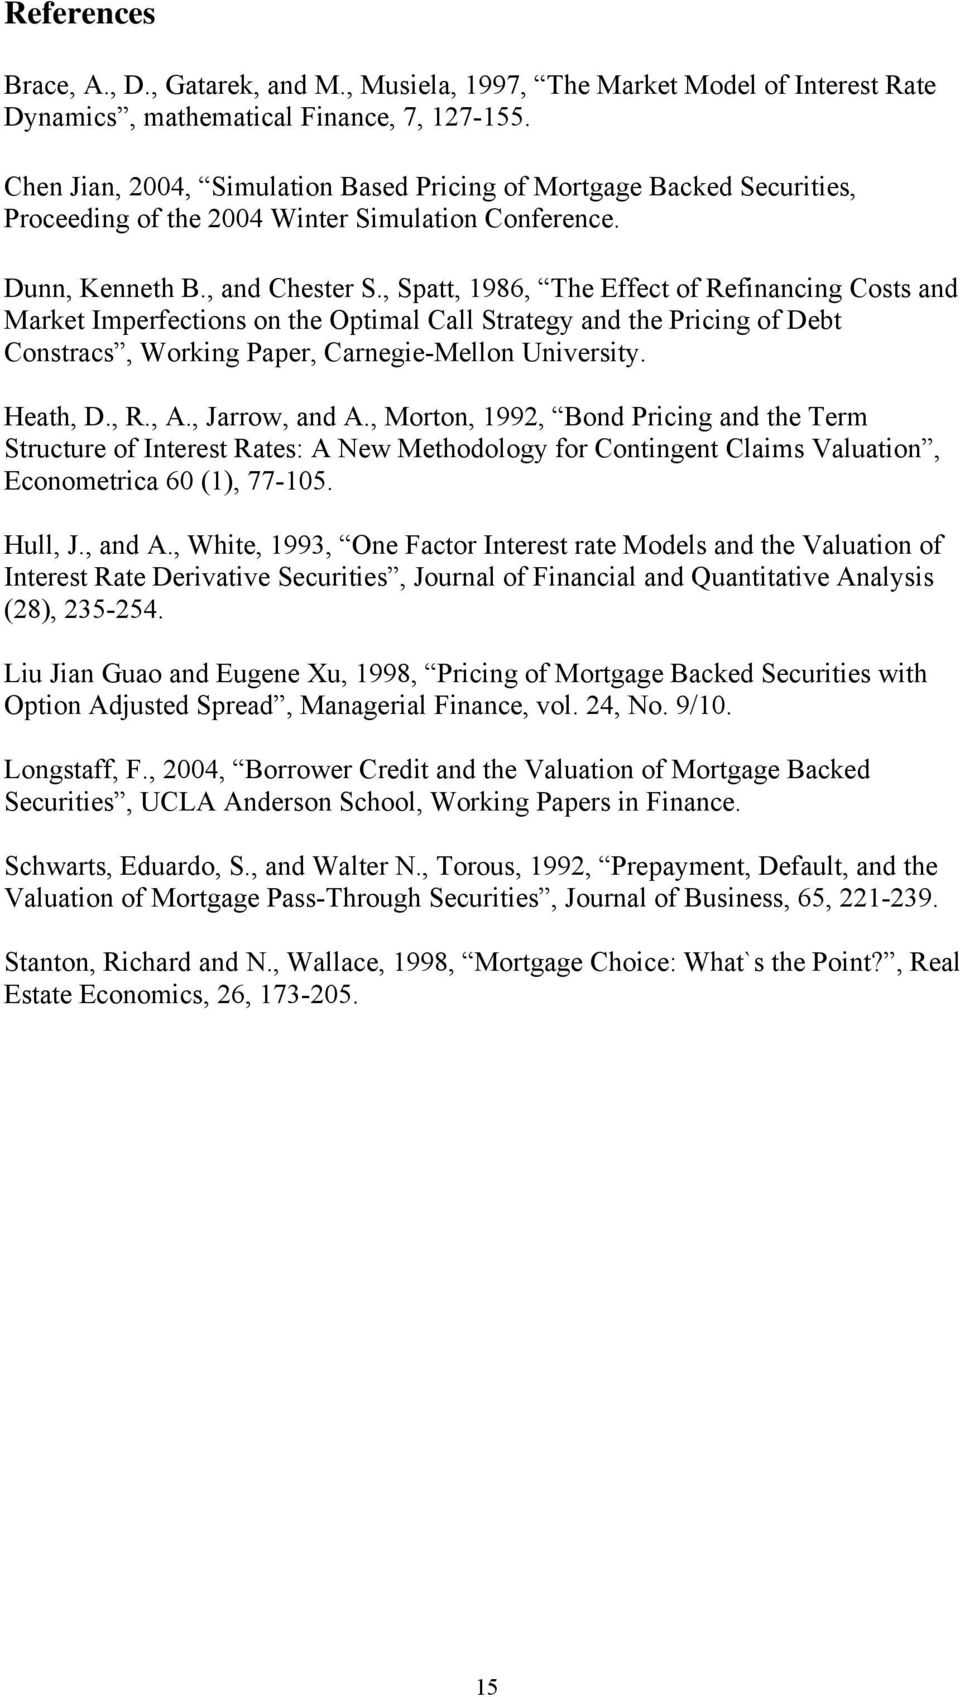 , Spa, 1986, The Effec of Refinancing Coss and Marke Imperfecions on he Opimal Call Sraegy and he Pricing of Deb Consracs, Working Paper, Carnegie-Mellon Universiy. Heah, D., R., A., Jarrow, and A.